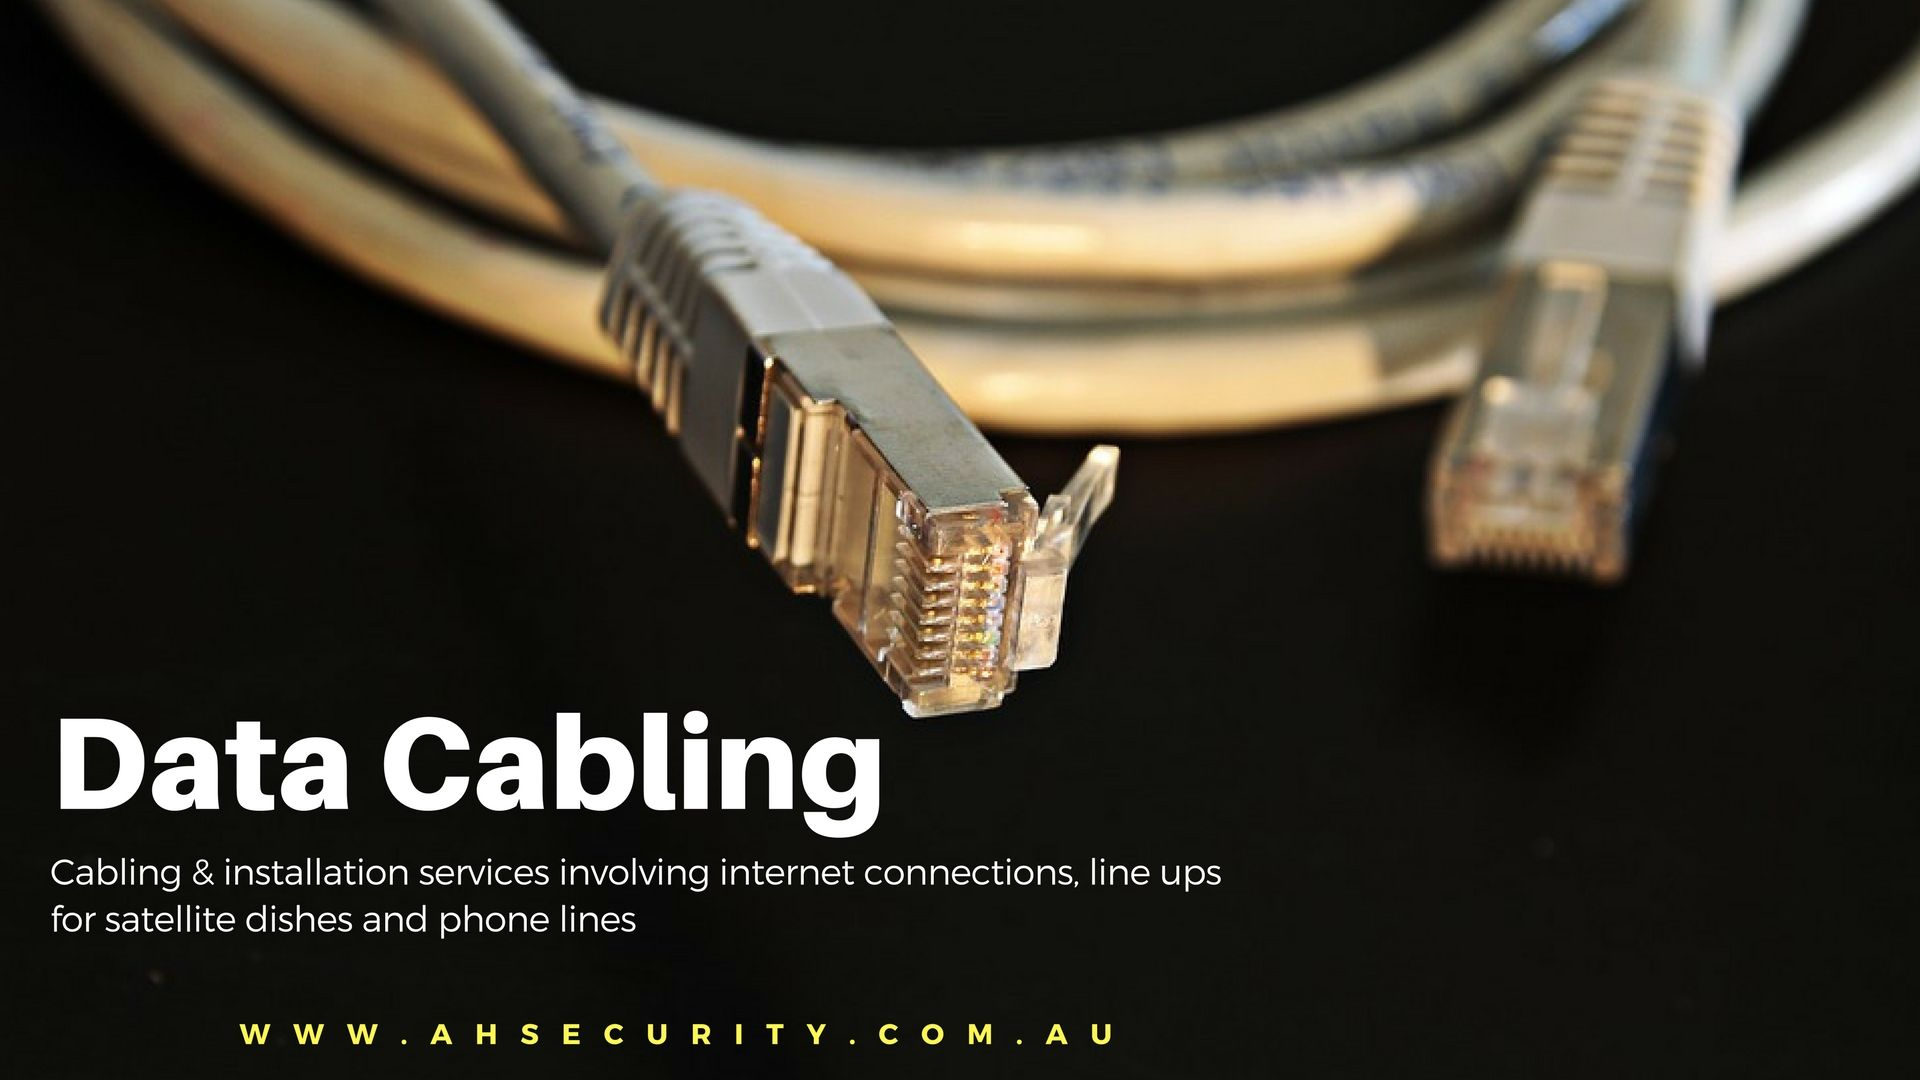 Cabling Installation Services Involving Internet Connections Line Satellite Dish Wiring Ups For Dishes And Phone Lines